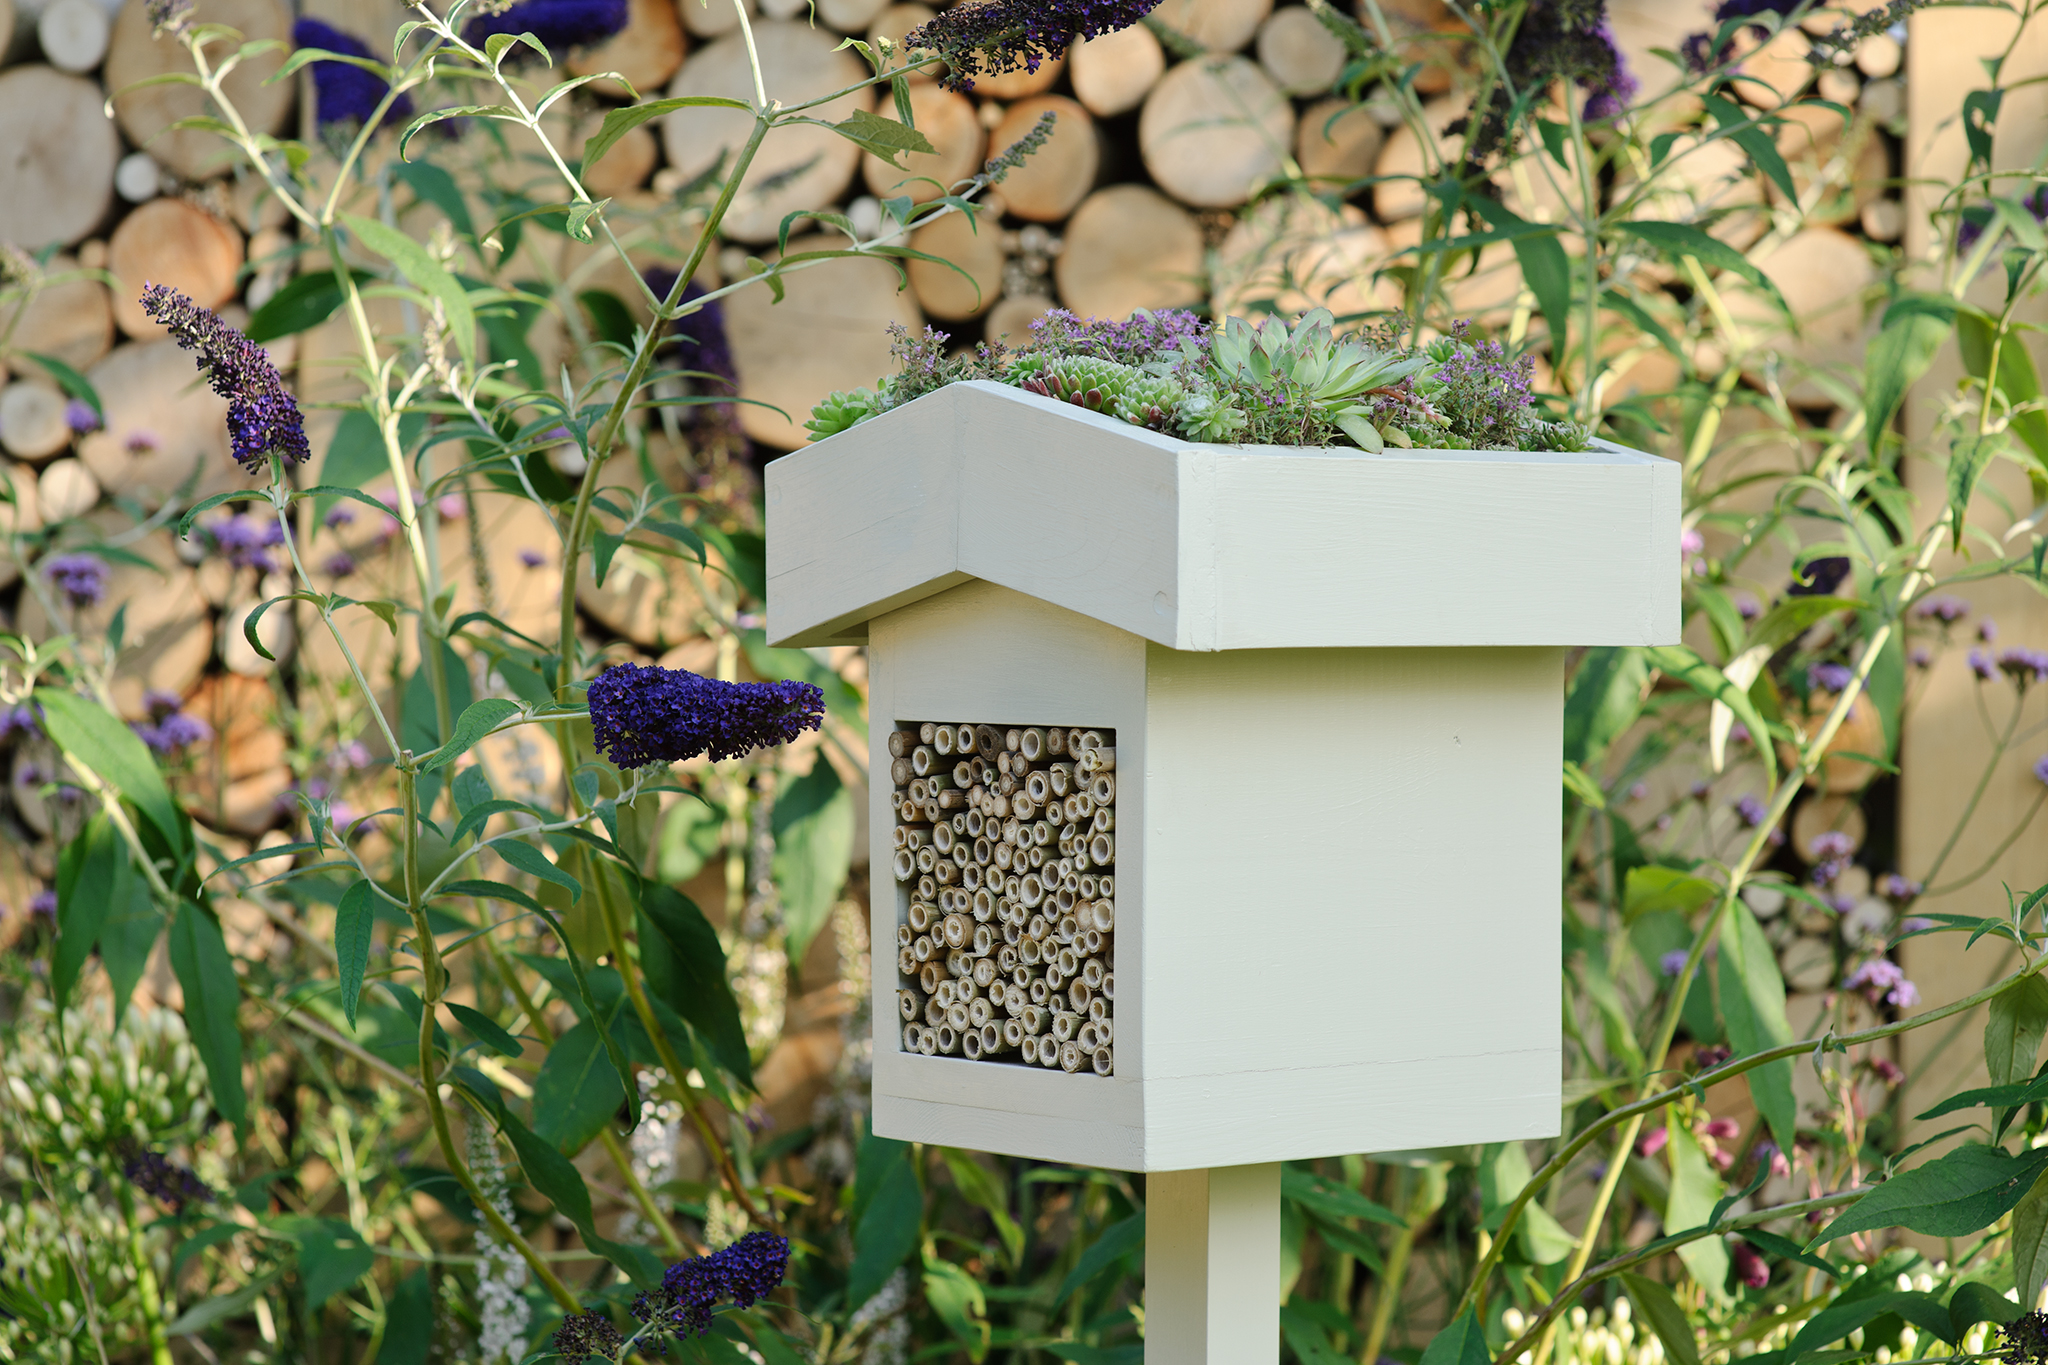 bee-hotel-with-green-roof